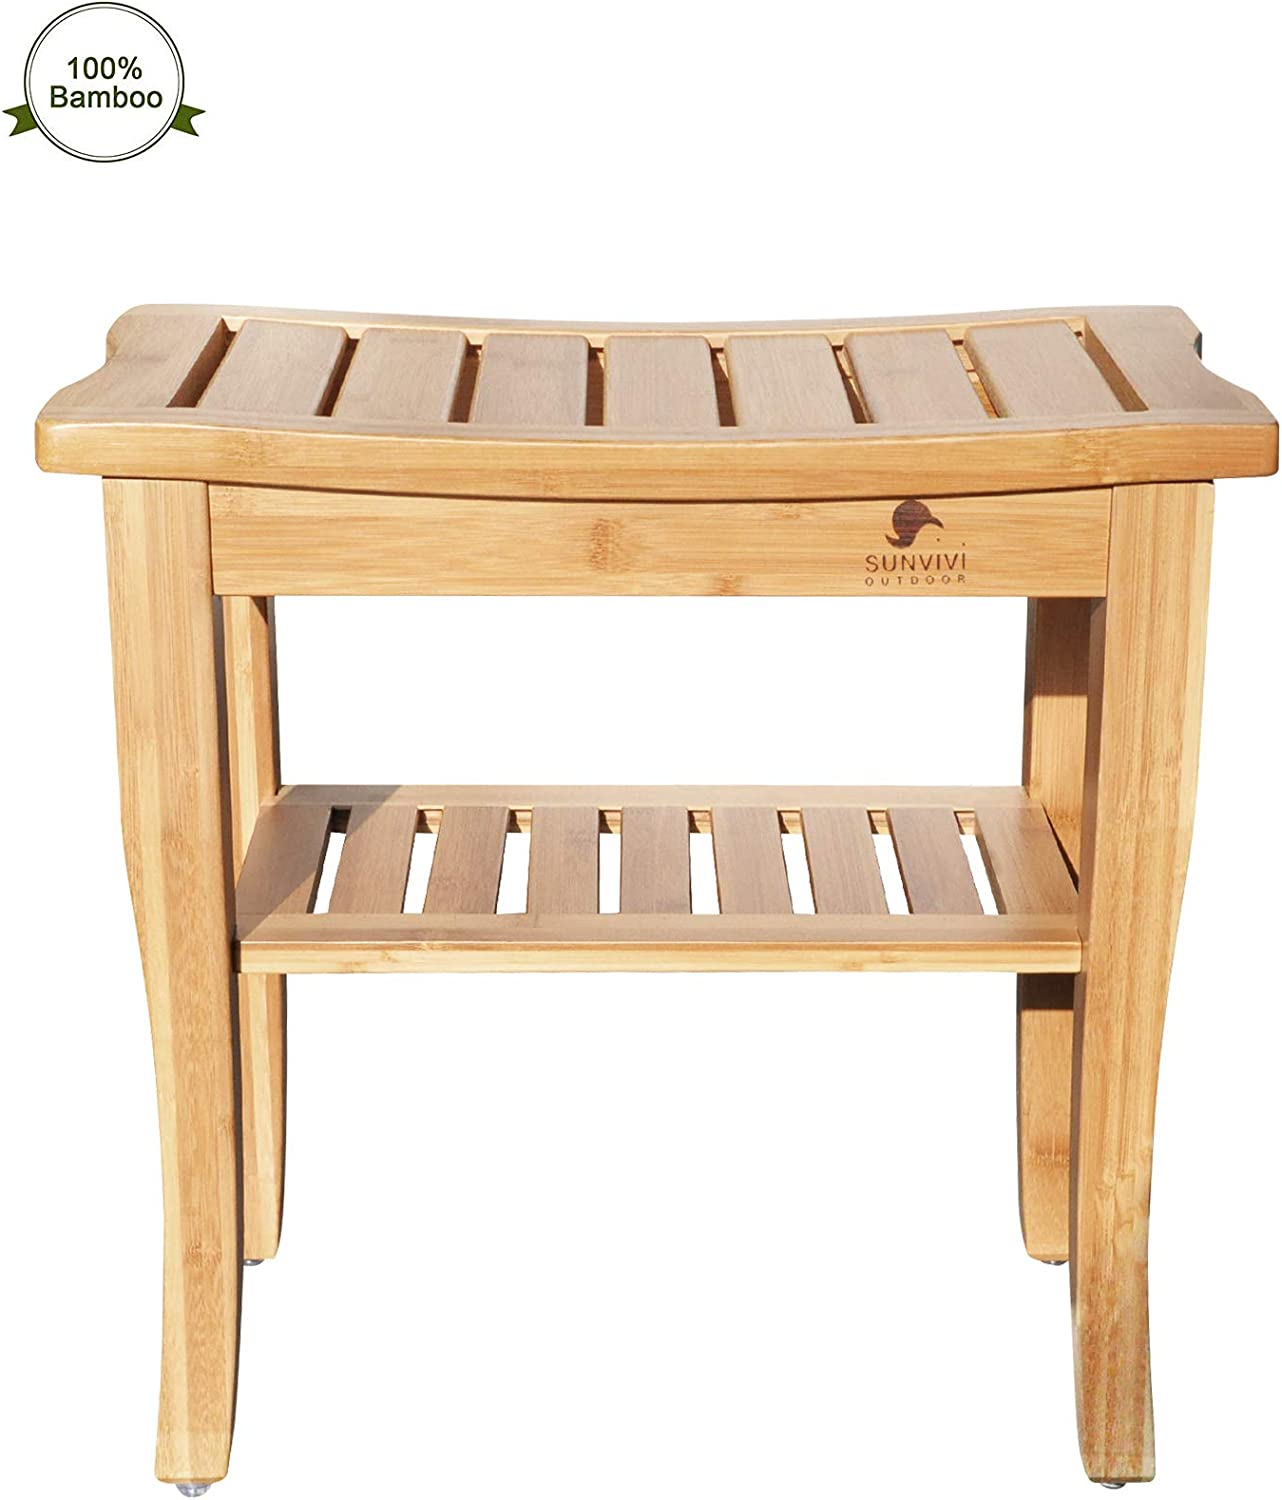 B07MF6XQMQ Ollypulse Bamboo Shower Bench, Spa Bath Seat Stool with 2-Tier Storage Shelf Wooden Shower Spa Chair Seat for Indoor Outdoor 71WOfJg4EgL.SL1500_